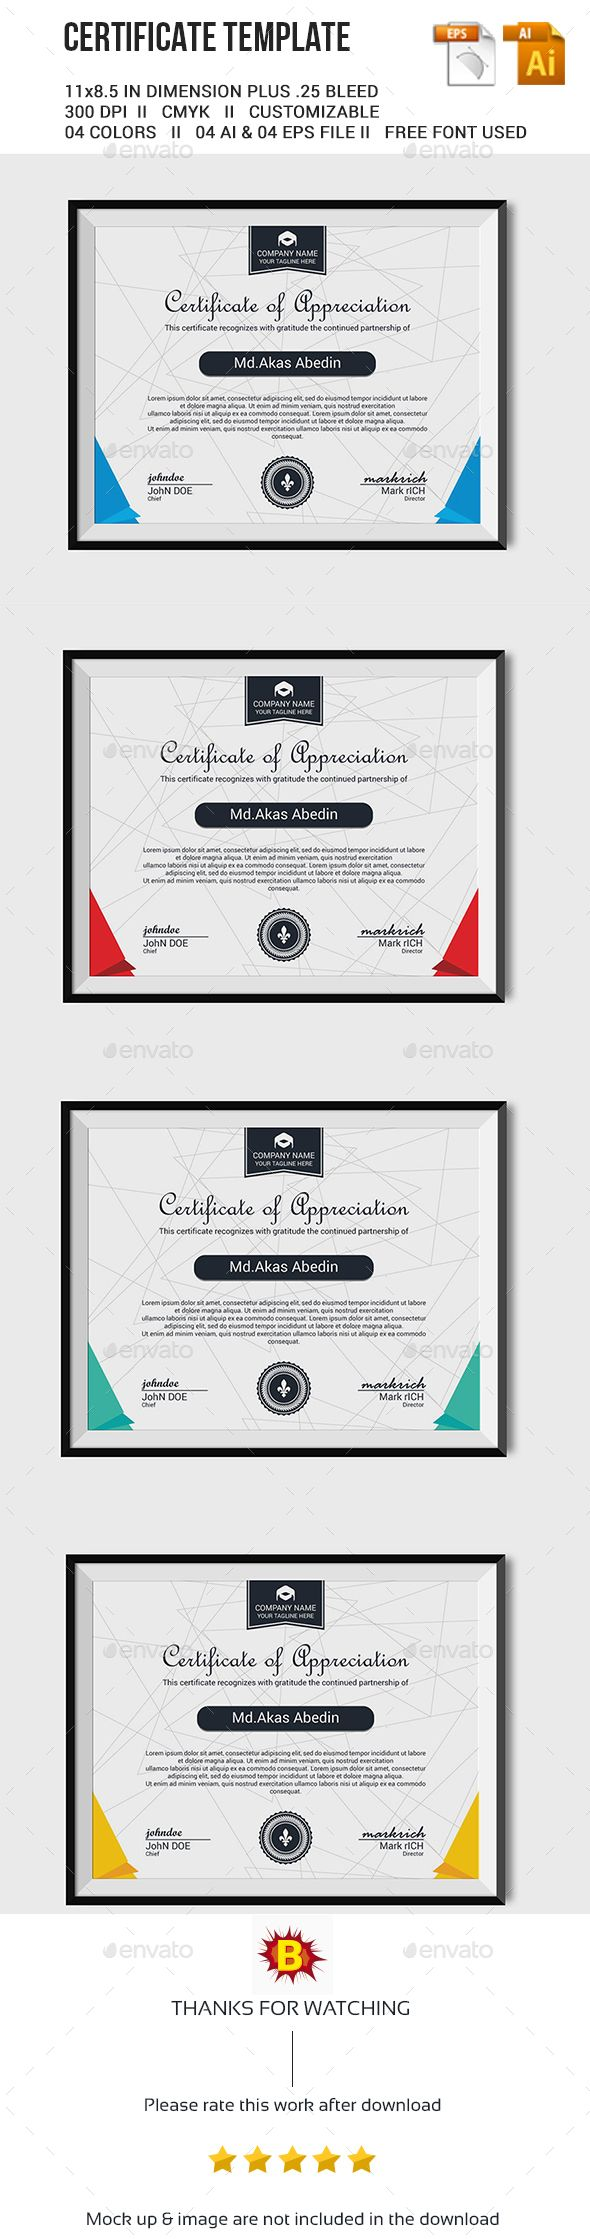 Certificate Template Vector EPS, AI. Download here: http://graphicriver.net/item/certificate-template/13633106?ref=ksioks